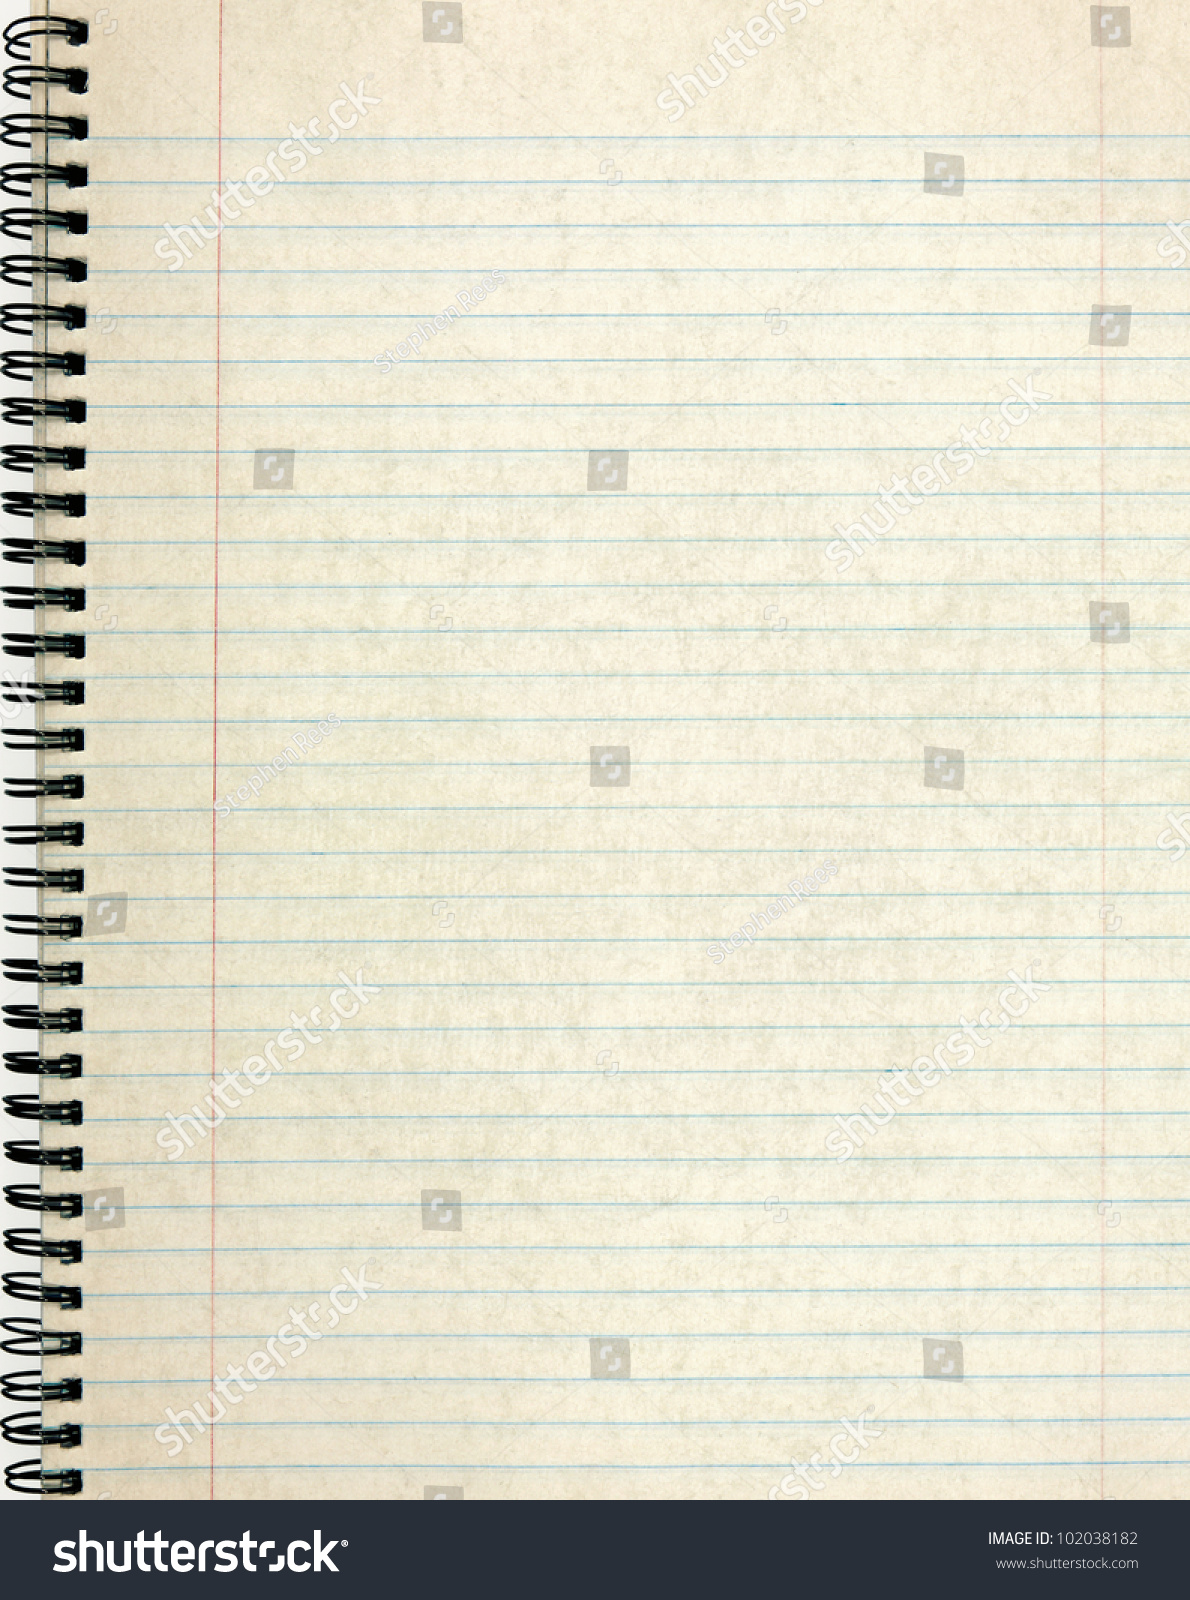 Old Notebook Page Lined Paper Photo 102038182 Shutterstock – Lined Page